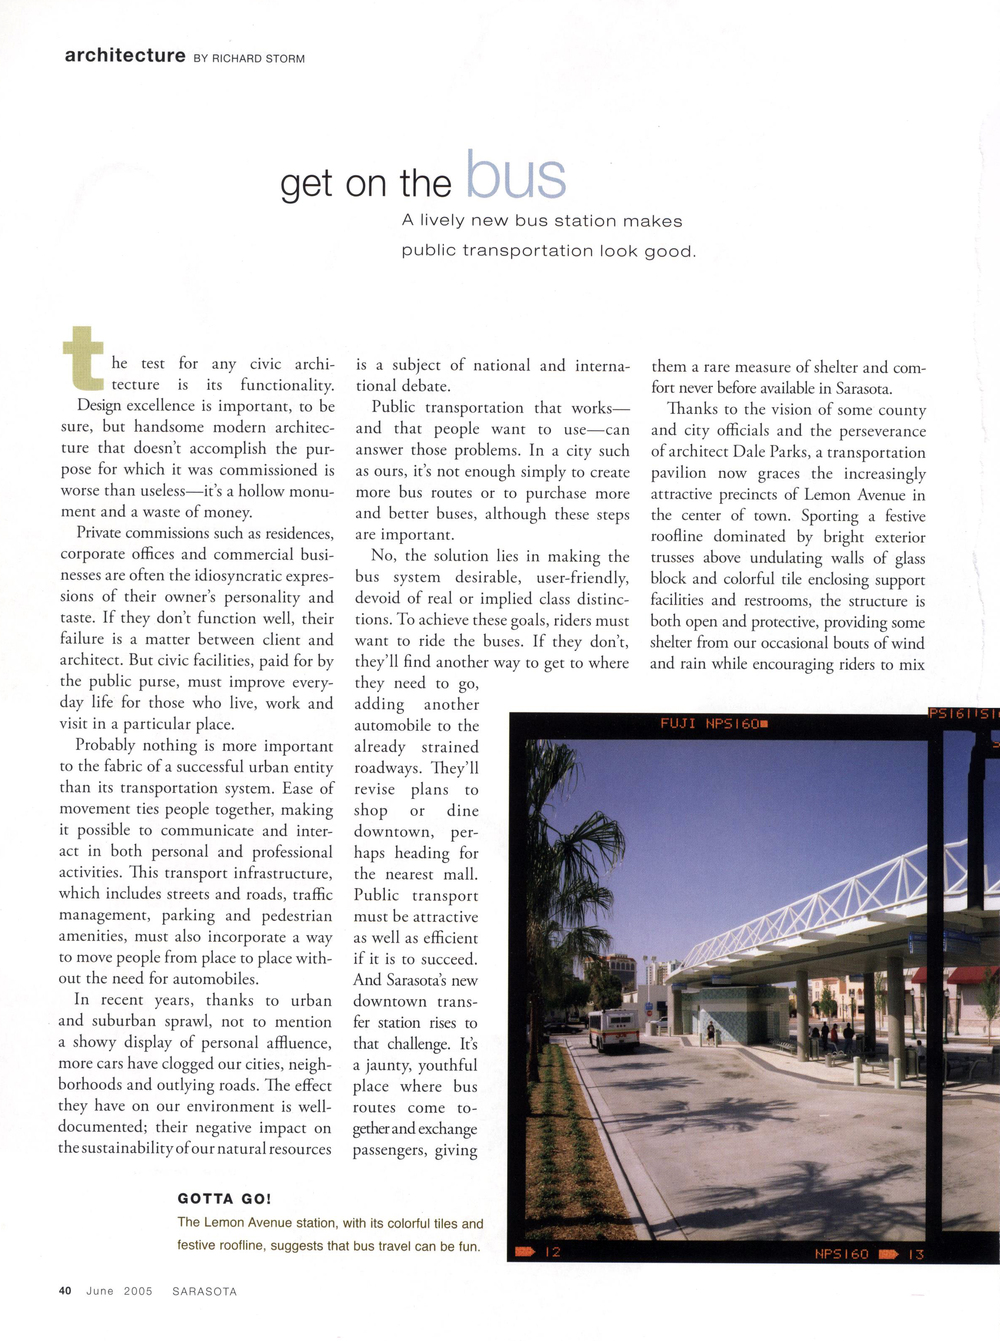 Sarasota 2005 (Publications) 002 SC-6.jpg